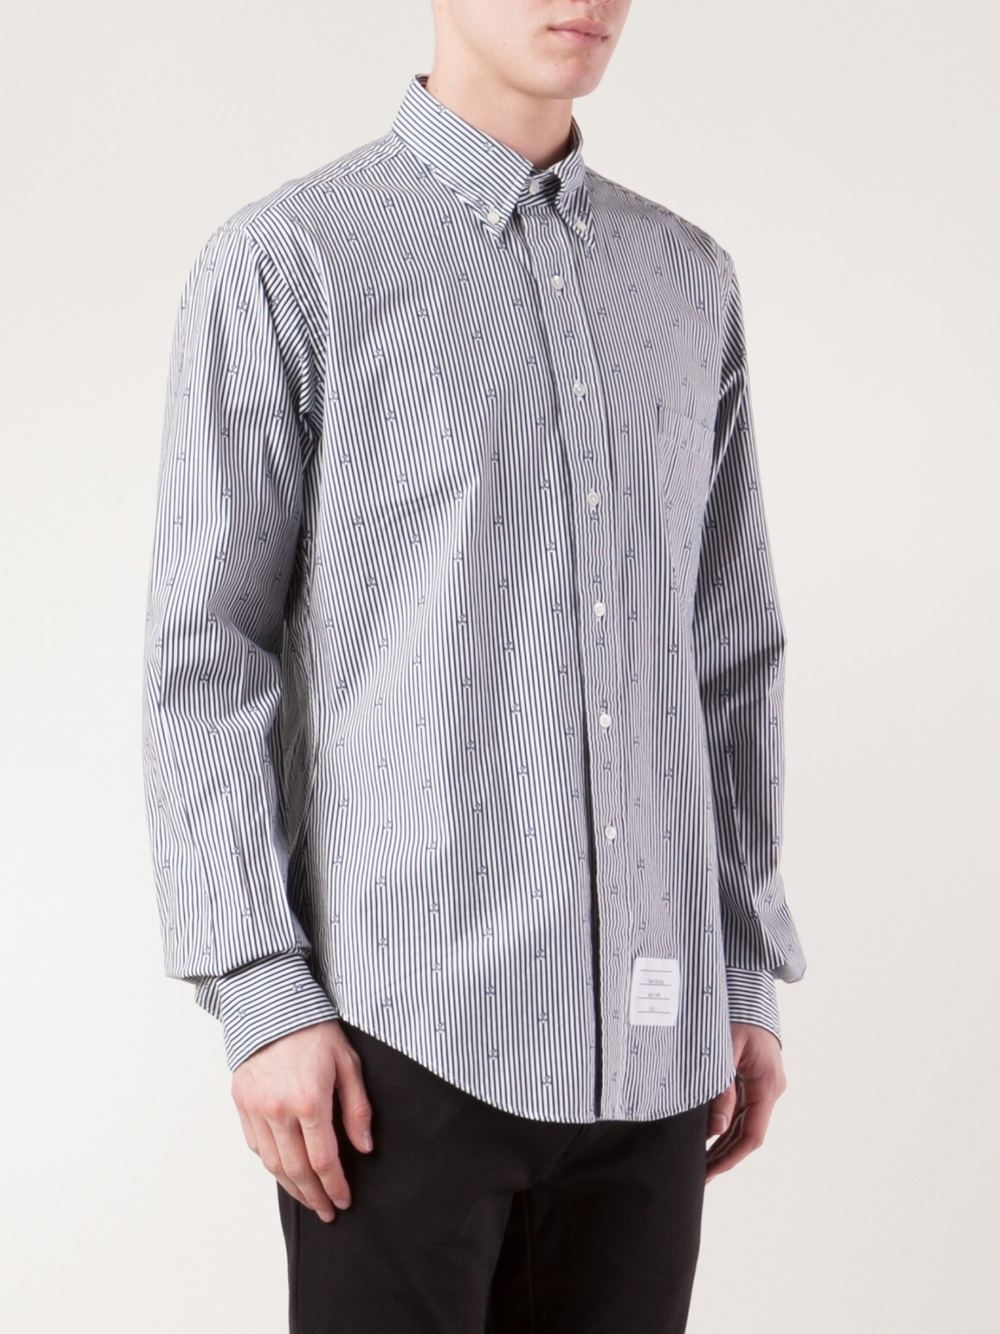 Lyst thom browne striped shirt in blue for men for Thom browne white shirt